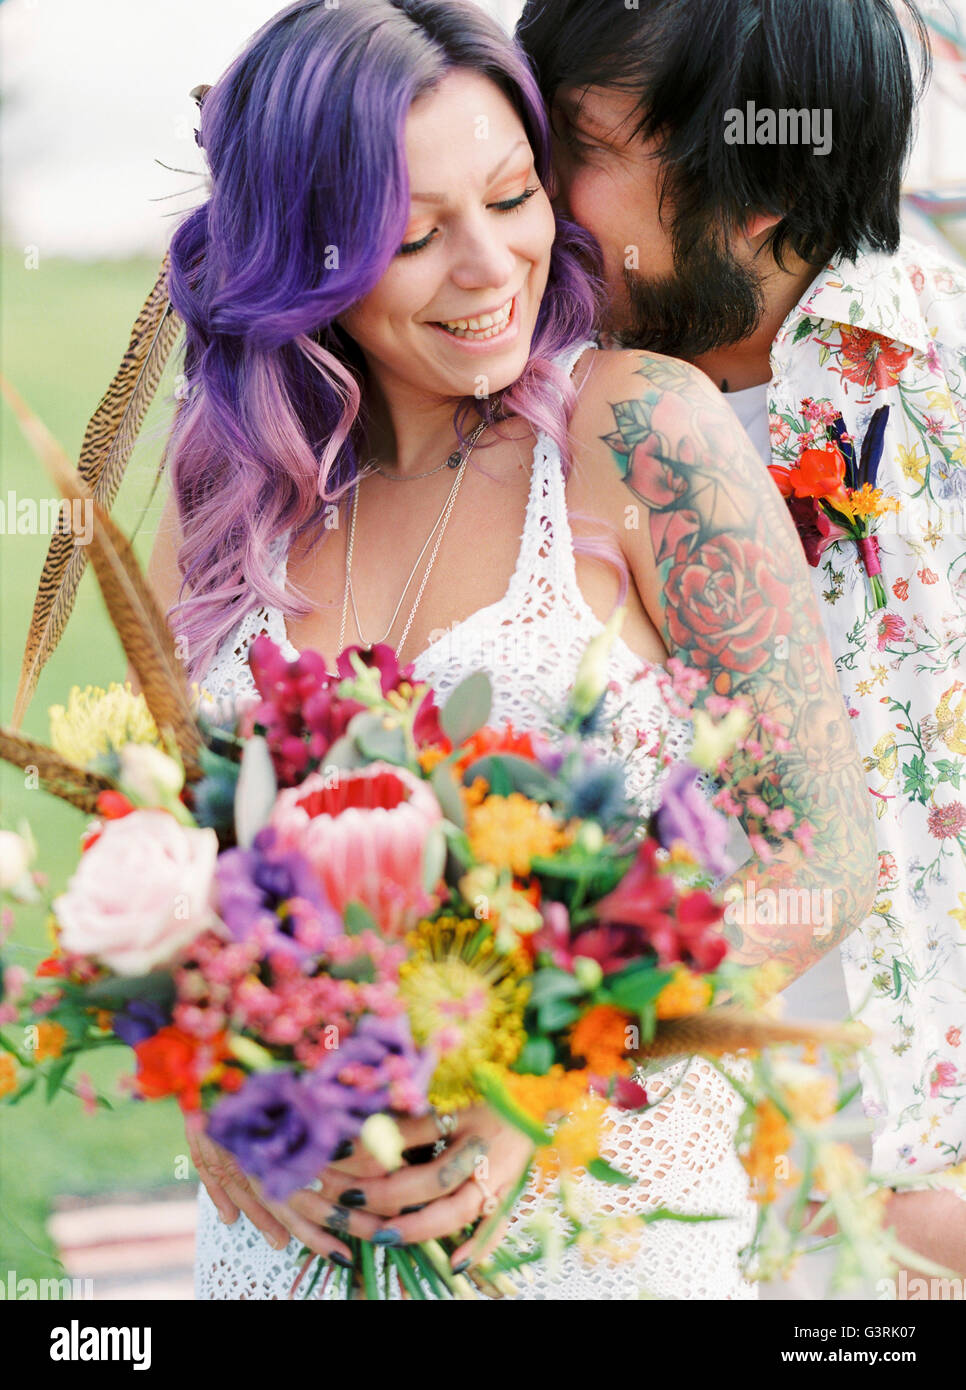 La Suède, Groom kissing bride at mariage hippie Photo Stock